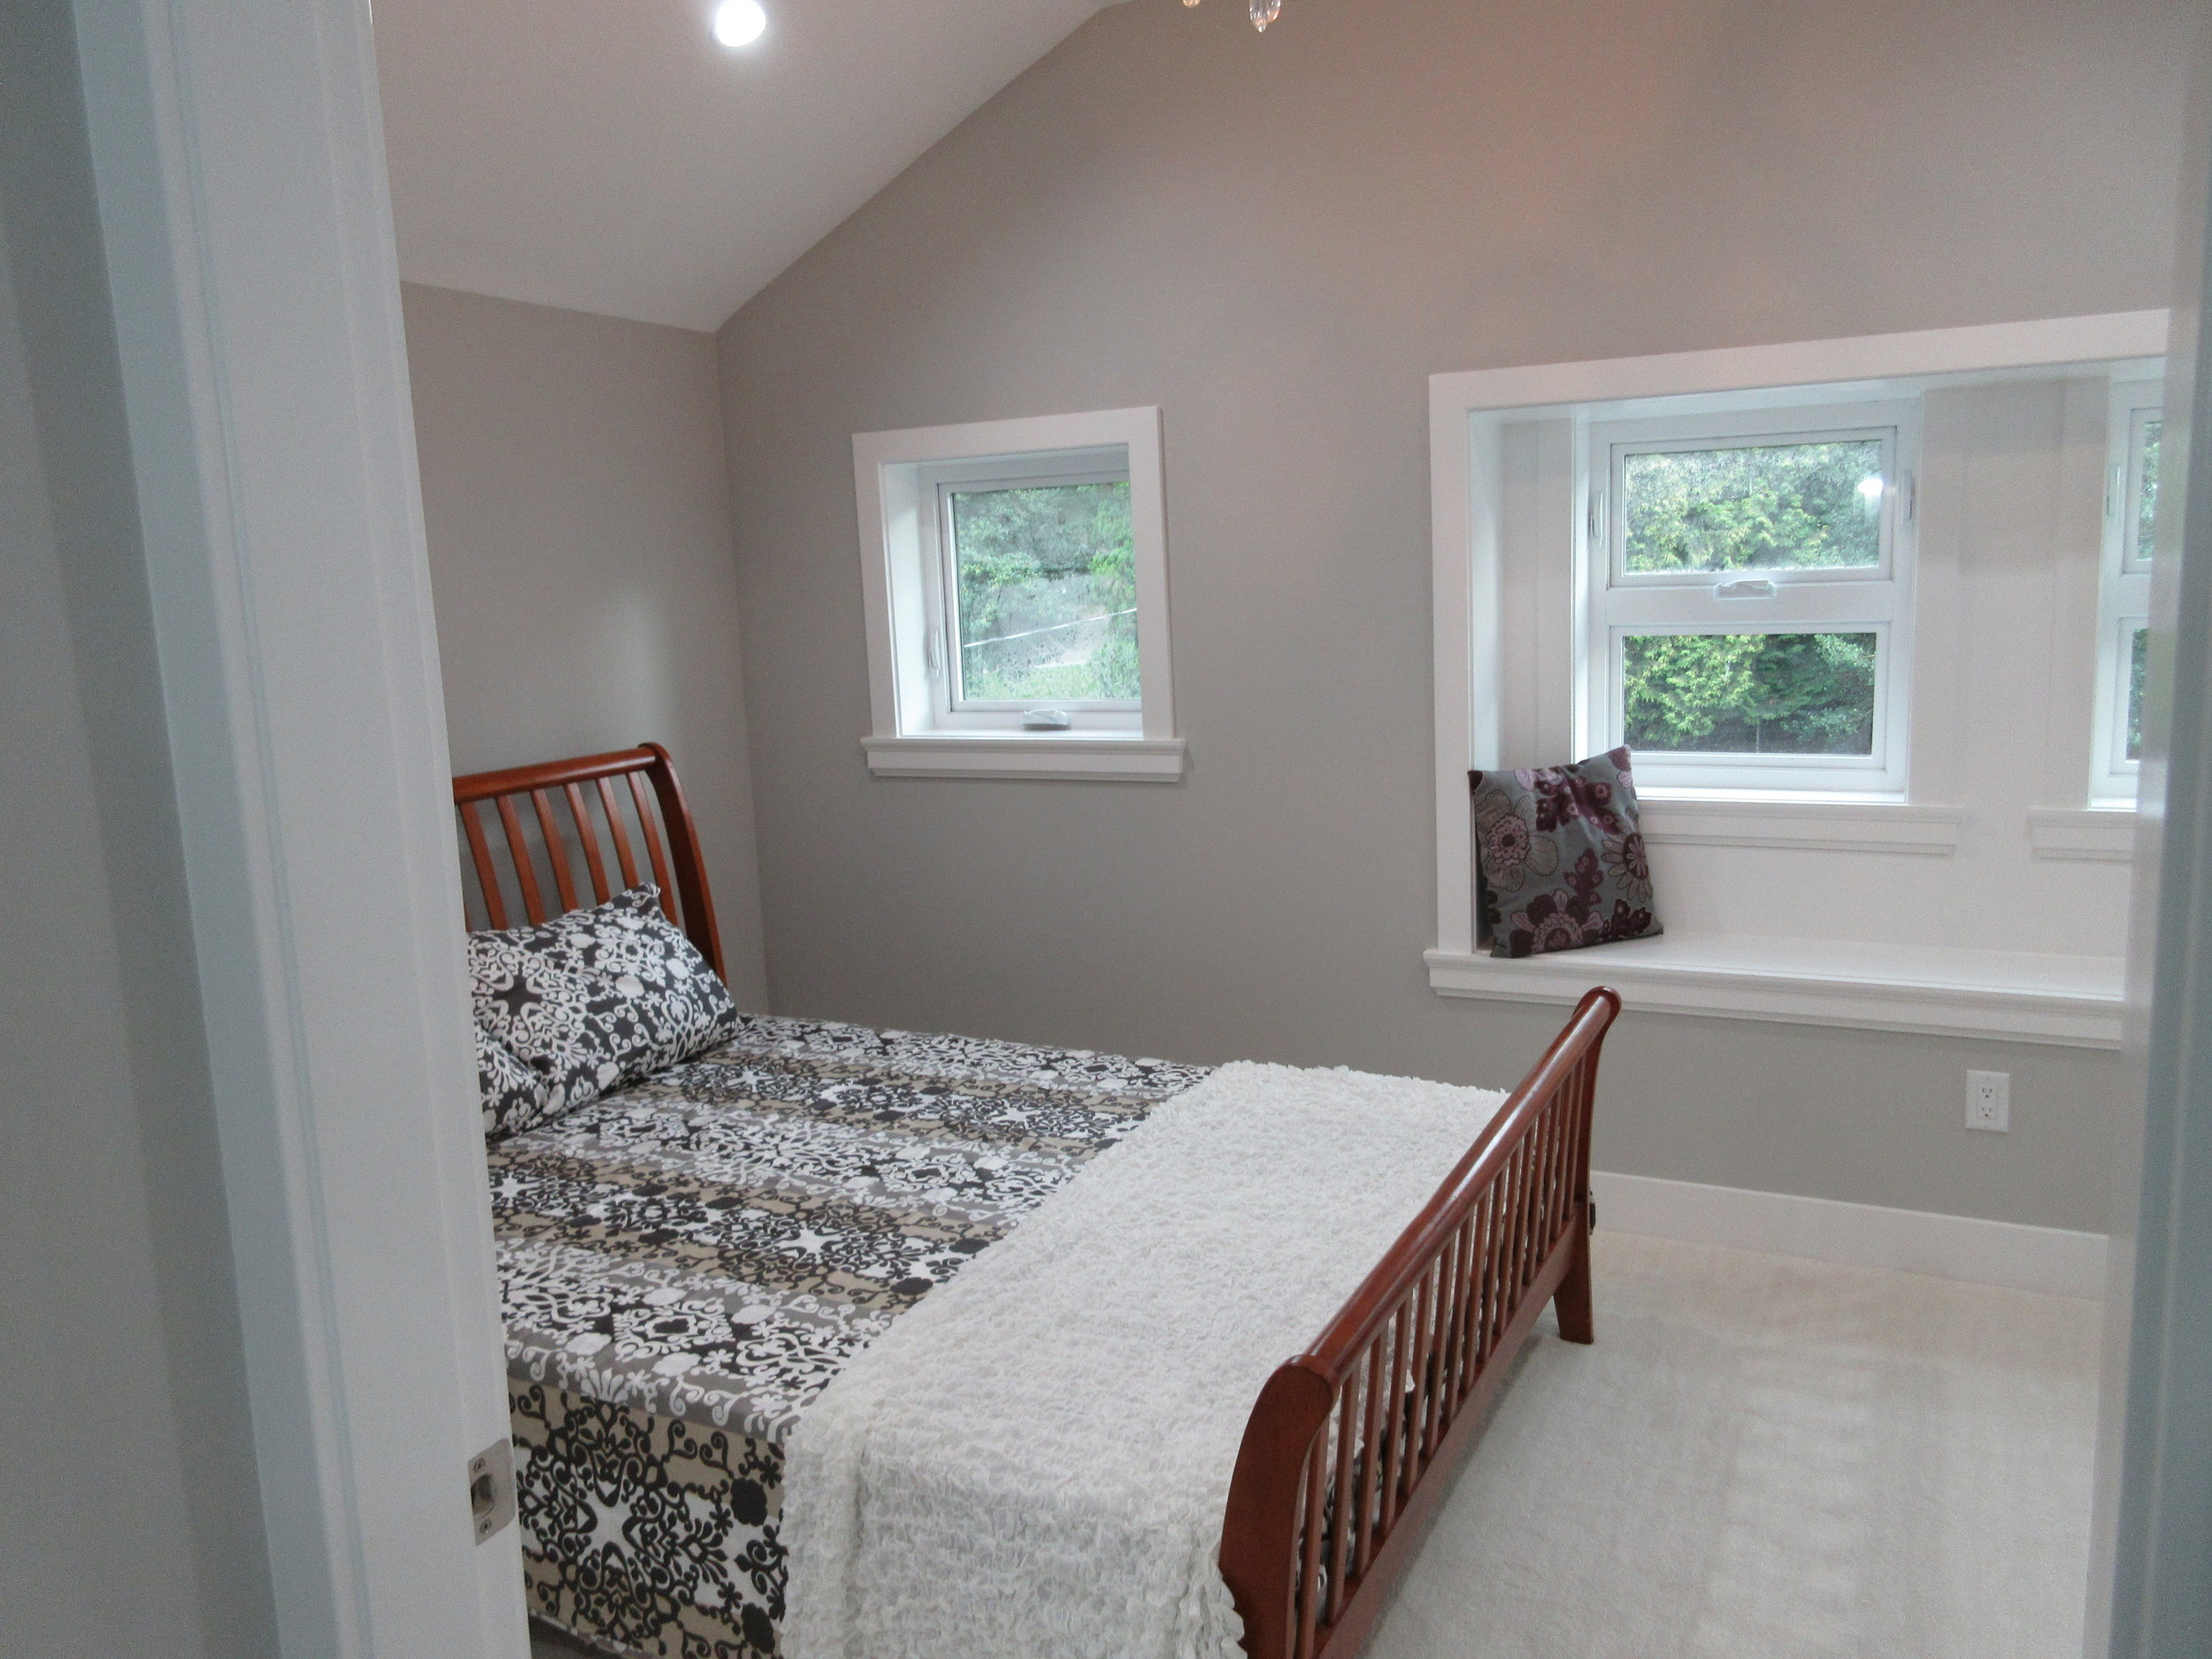 pic13 - Master bedroom with high ceilings, walkin, and ensuite.JPG